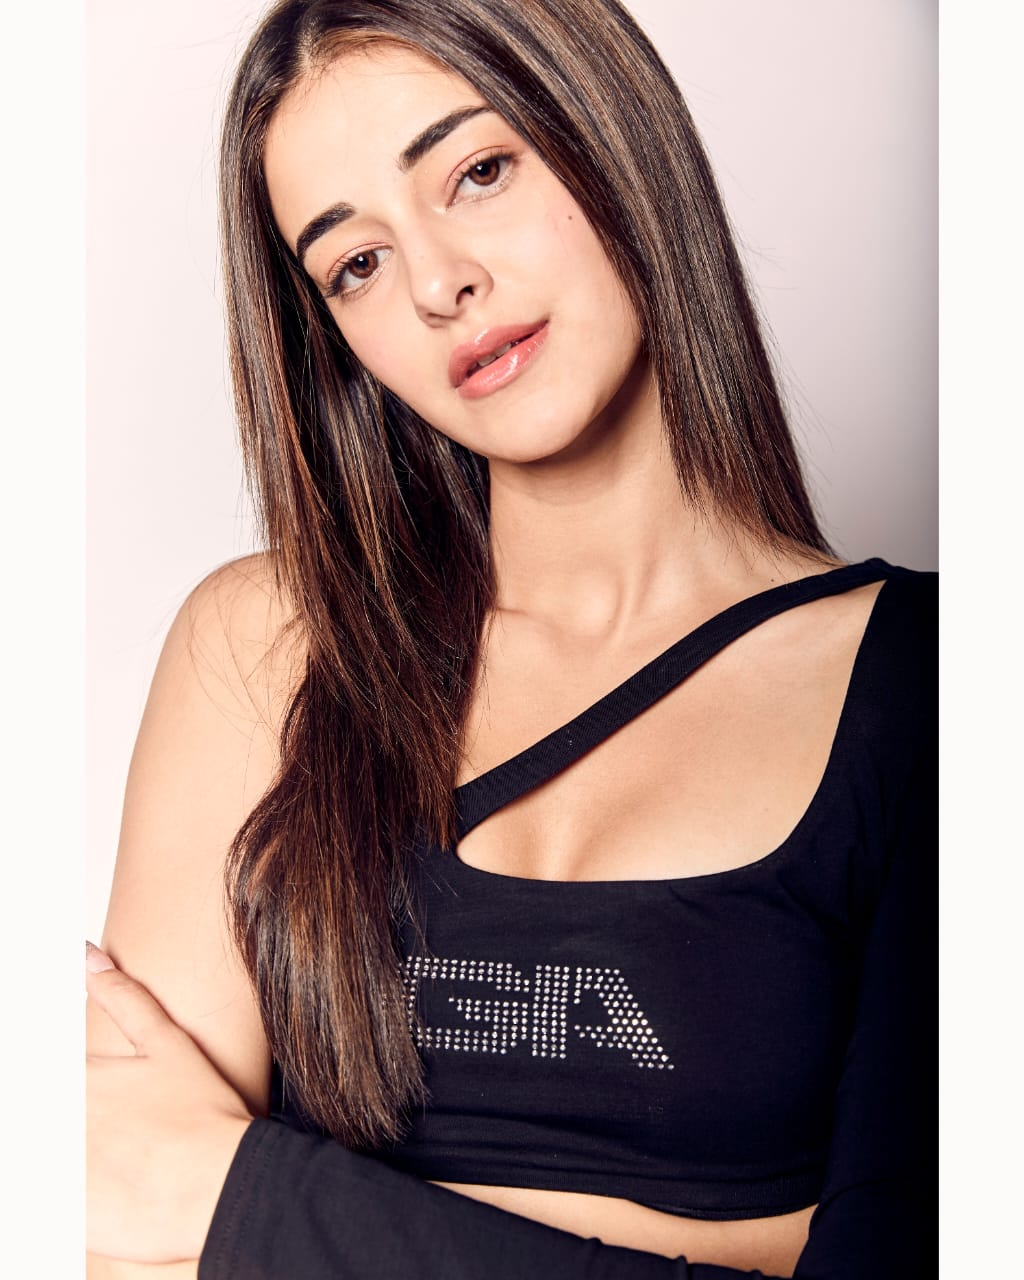 Ananya Panday in awe of Project Runway Season 18, streaming exclusively on Discovery Plus